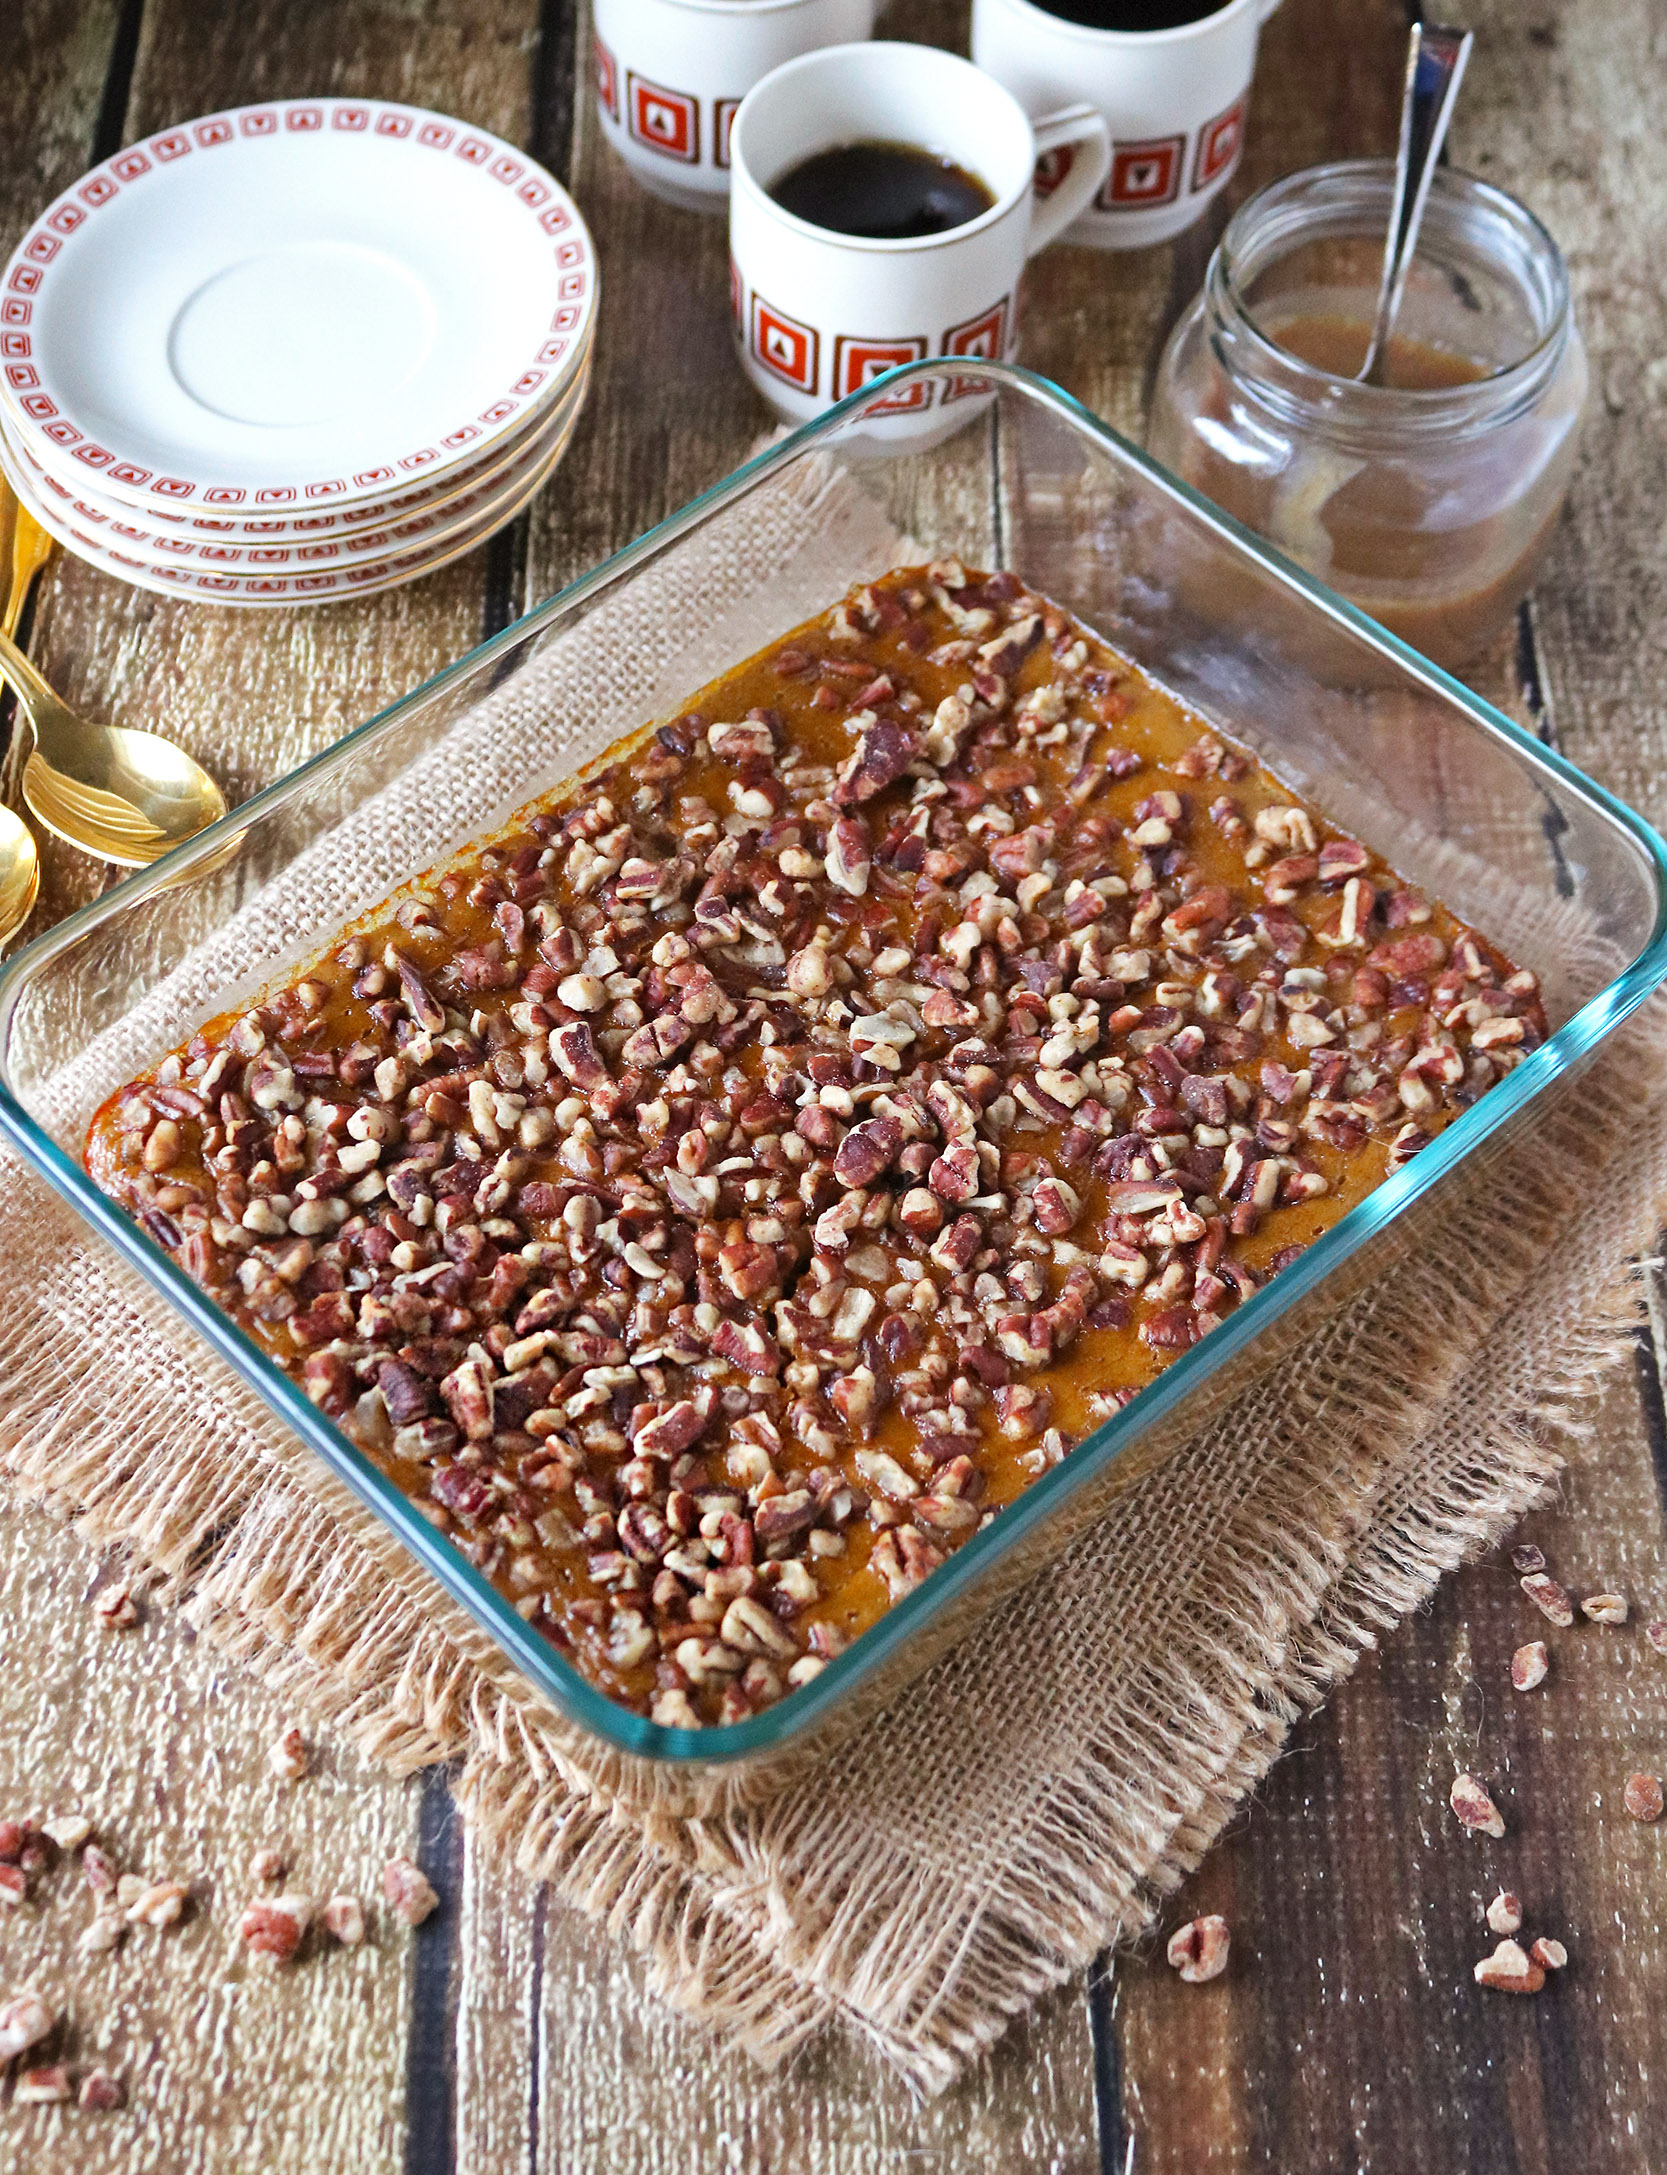 This Butternut Squash and Pecan Bake is simply delightful as a dessert or even breakfast! And, it happens to be dairy-free, gluten free and refined sugar-free!